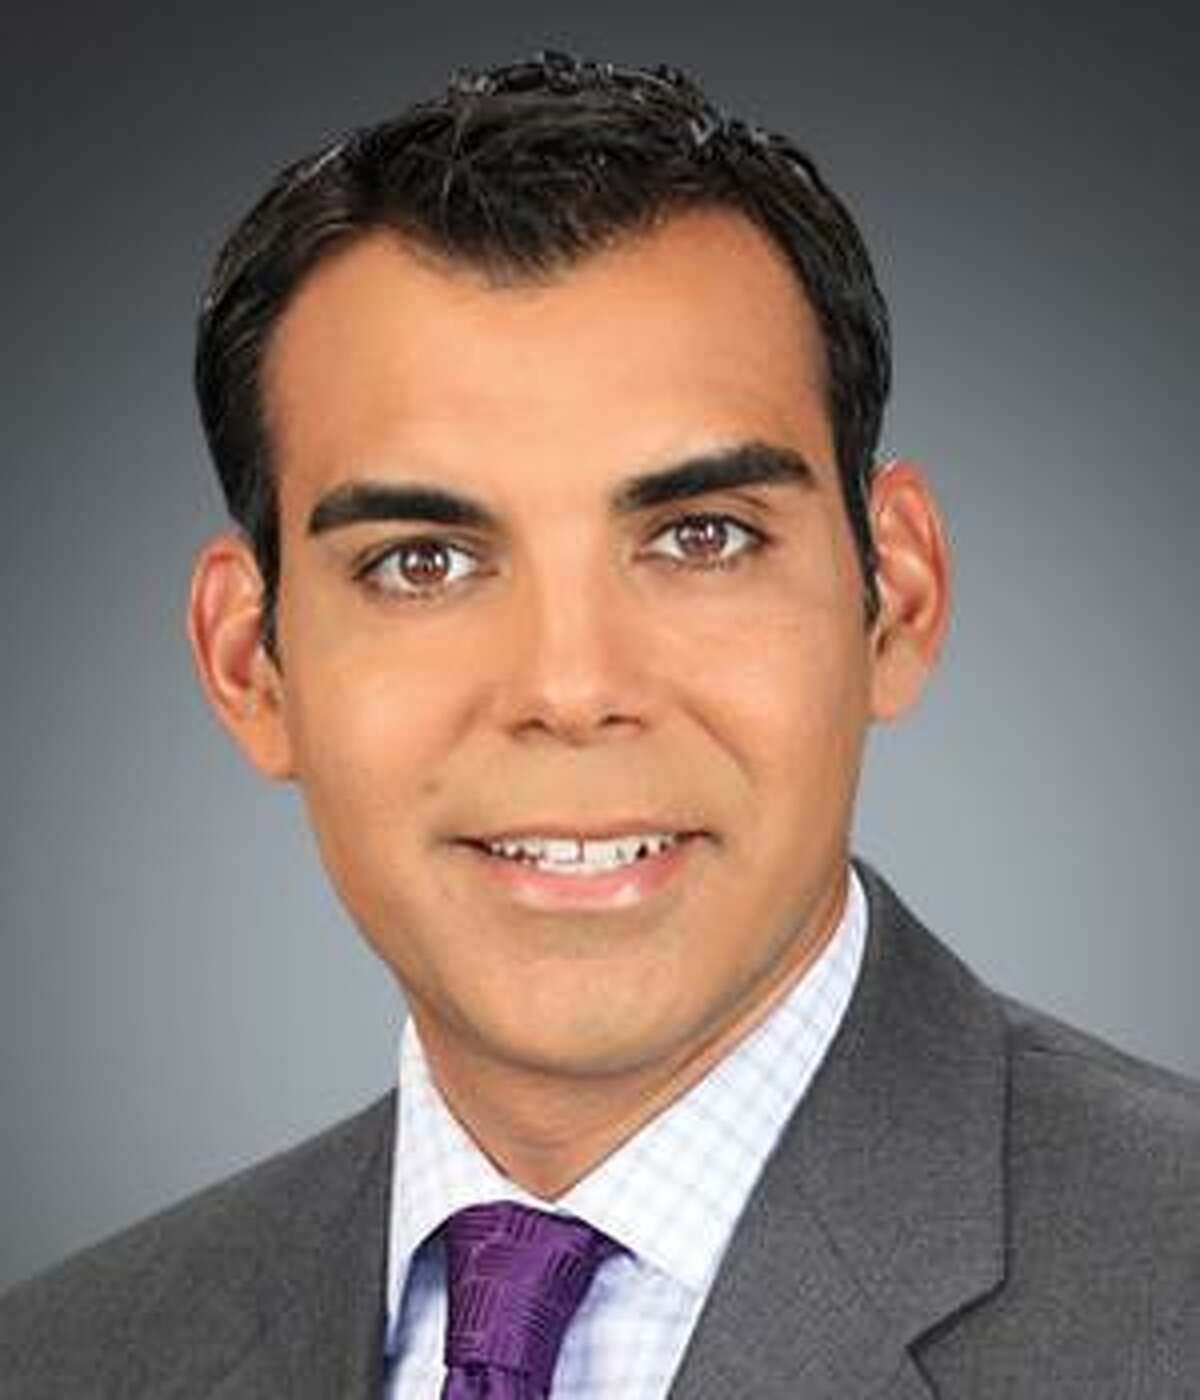 KSAT-TV anchorman Charles Gonzalez, who has stayed put in his weekend chair during many a co-anchor departure, is leaving in late November to pursue his other passion full-time: coffee.